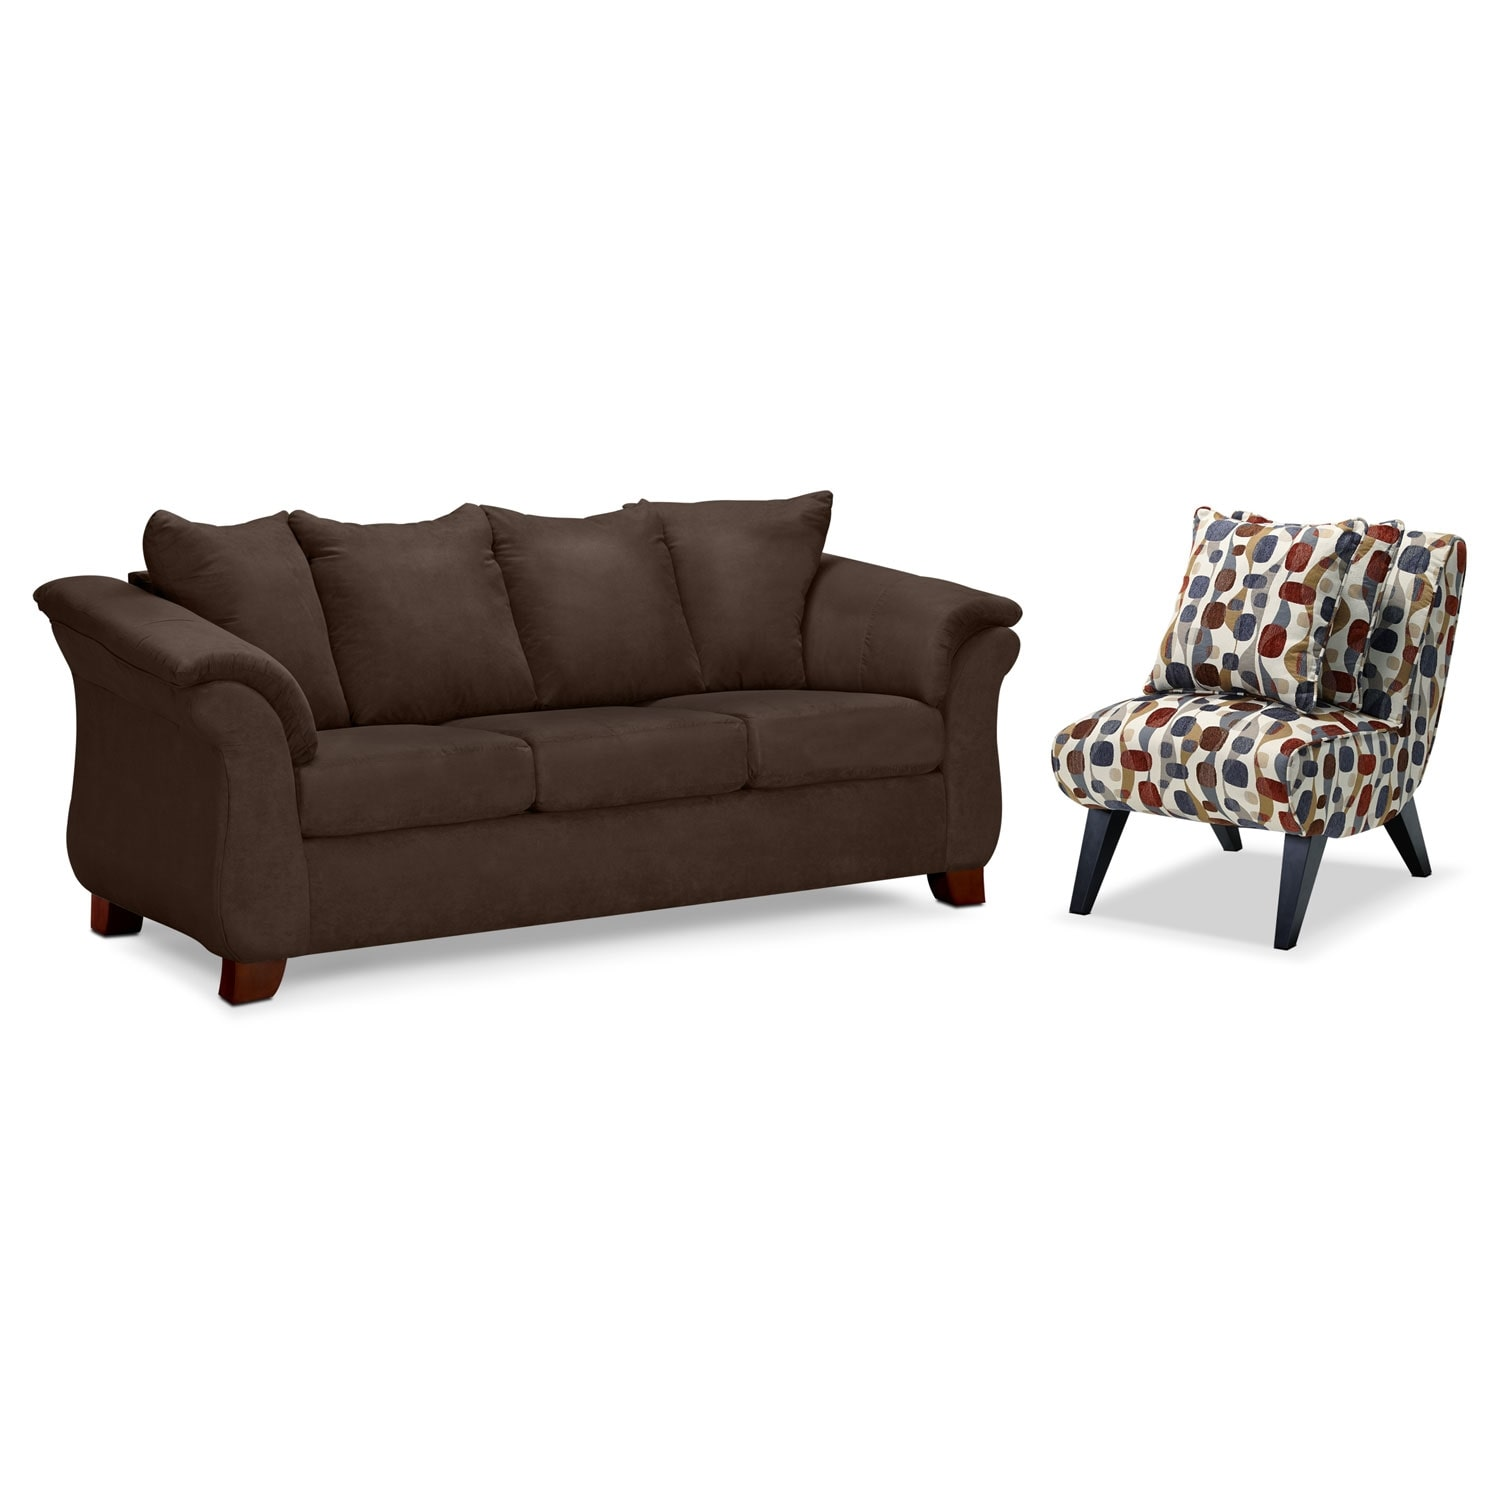 American Signature Furniture Outlet Factory Outlet Home Furniture American Signature Furniture